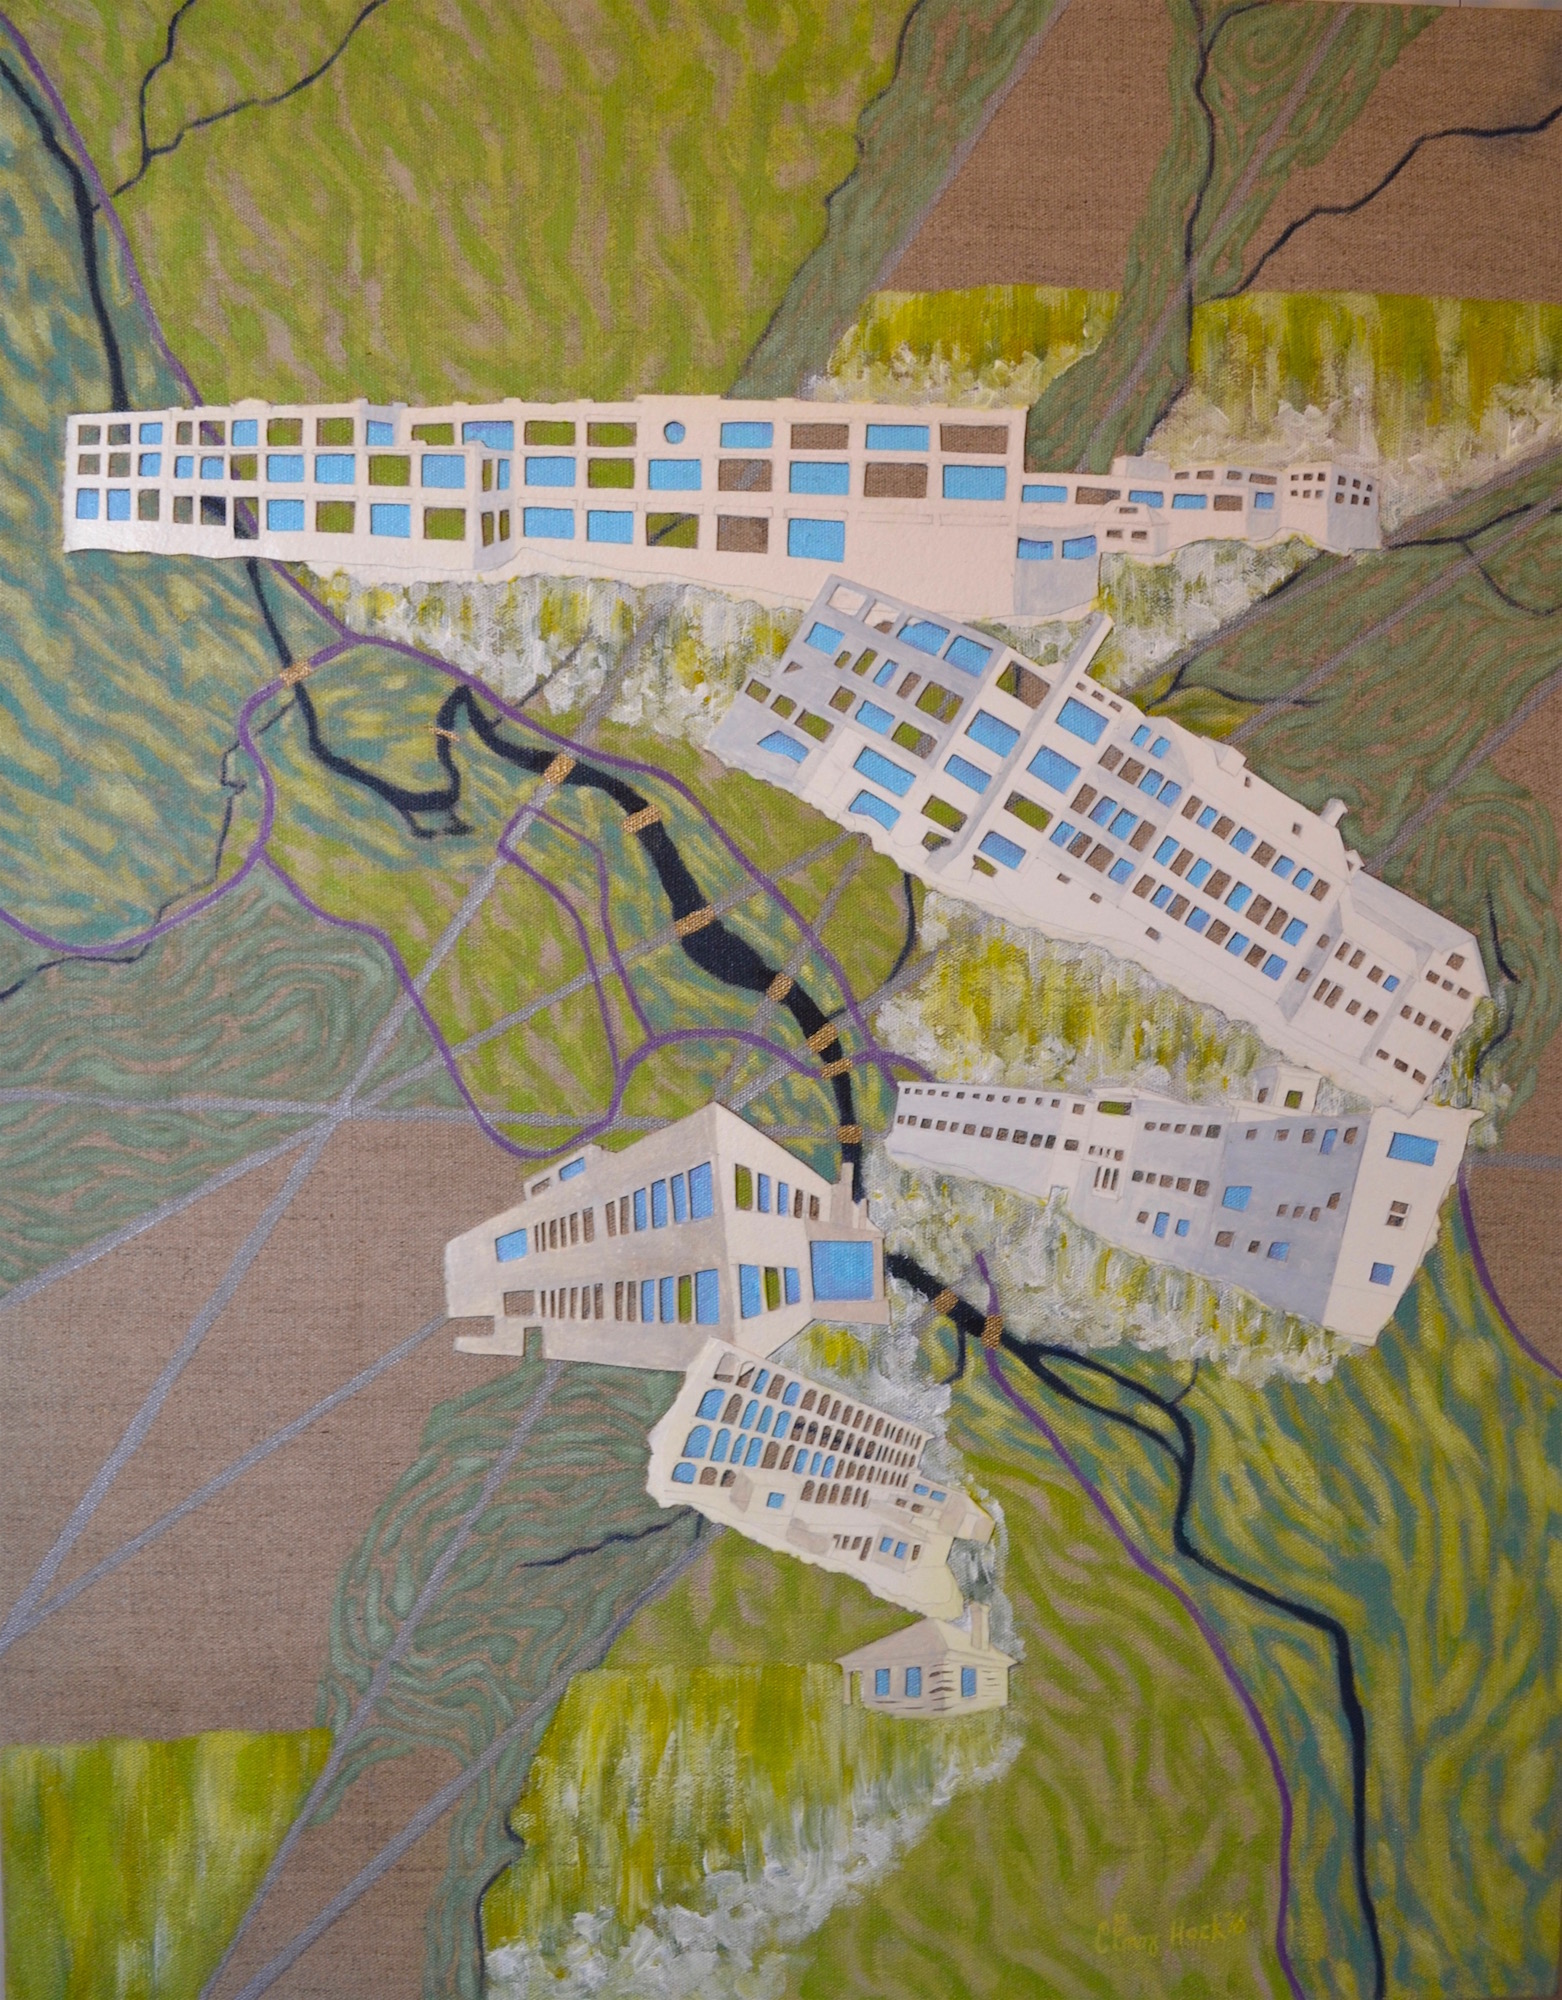 "Five Bridges, Six Dams - Springfield, Vermont Carolyn Enz Hack acrylic on linen 36x28"" 2016"